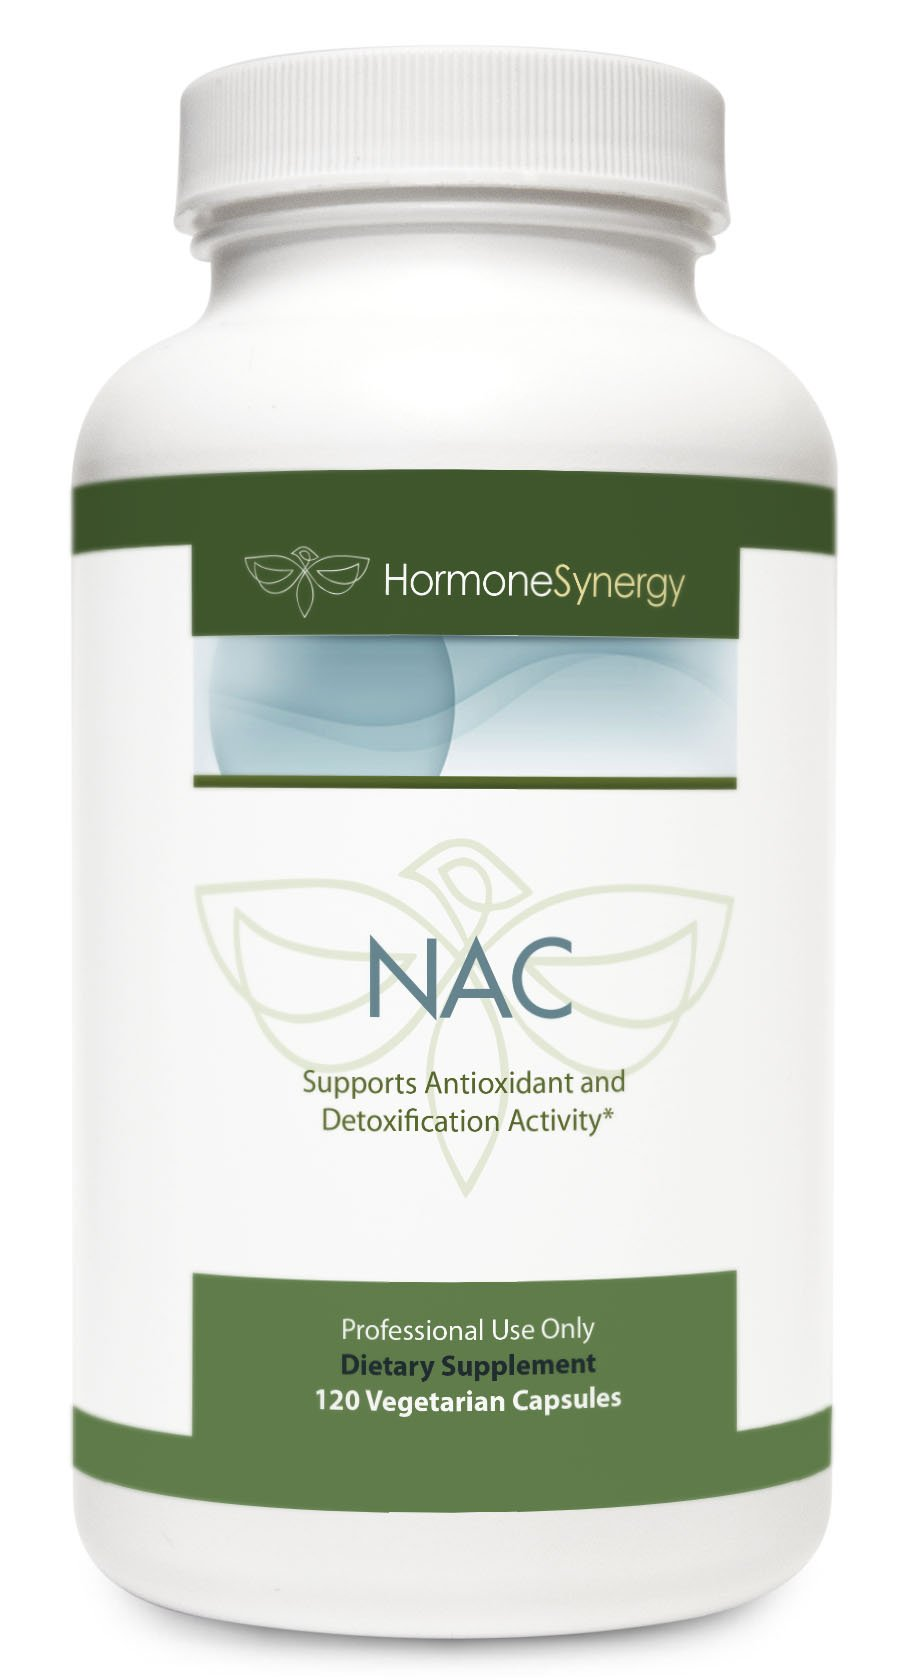 NAC | 900 mg N-Acetyl-L-Cysteine PER CAPSULE | 120 Vegetarian Capsules | Supports Glutathione production, Antioxidant and Detoxification Activity*